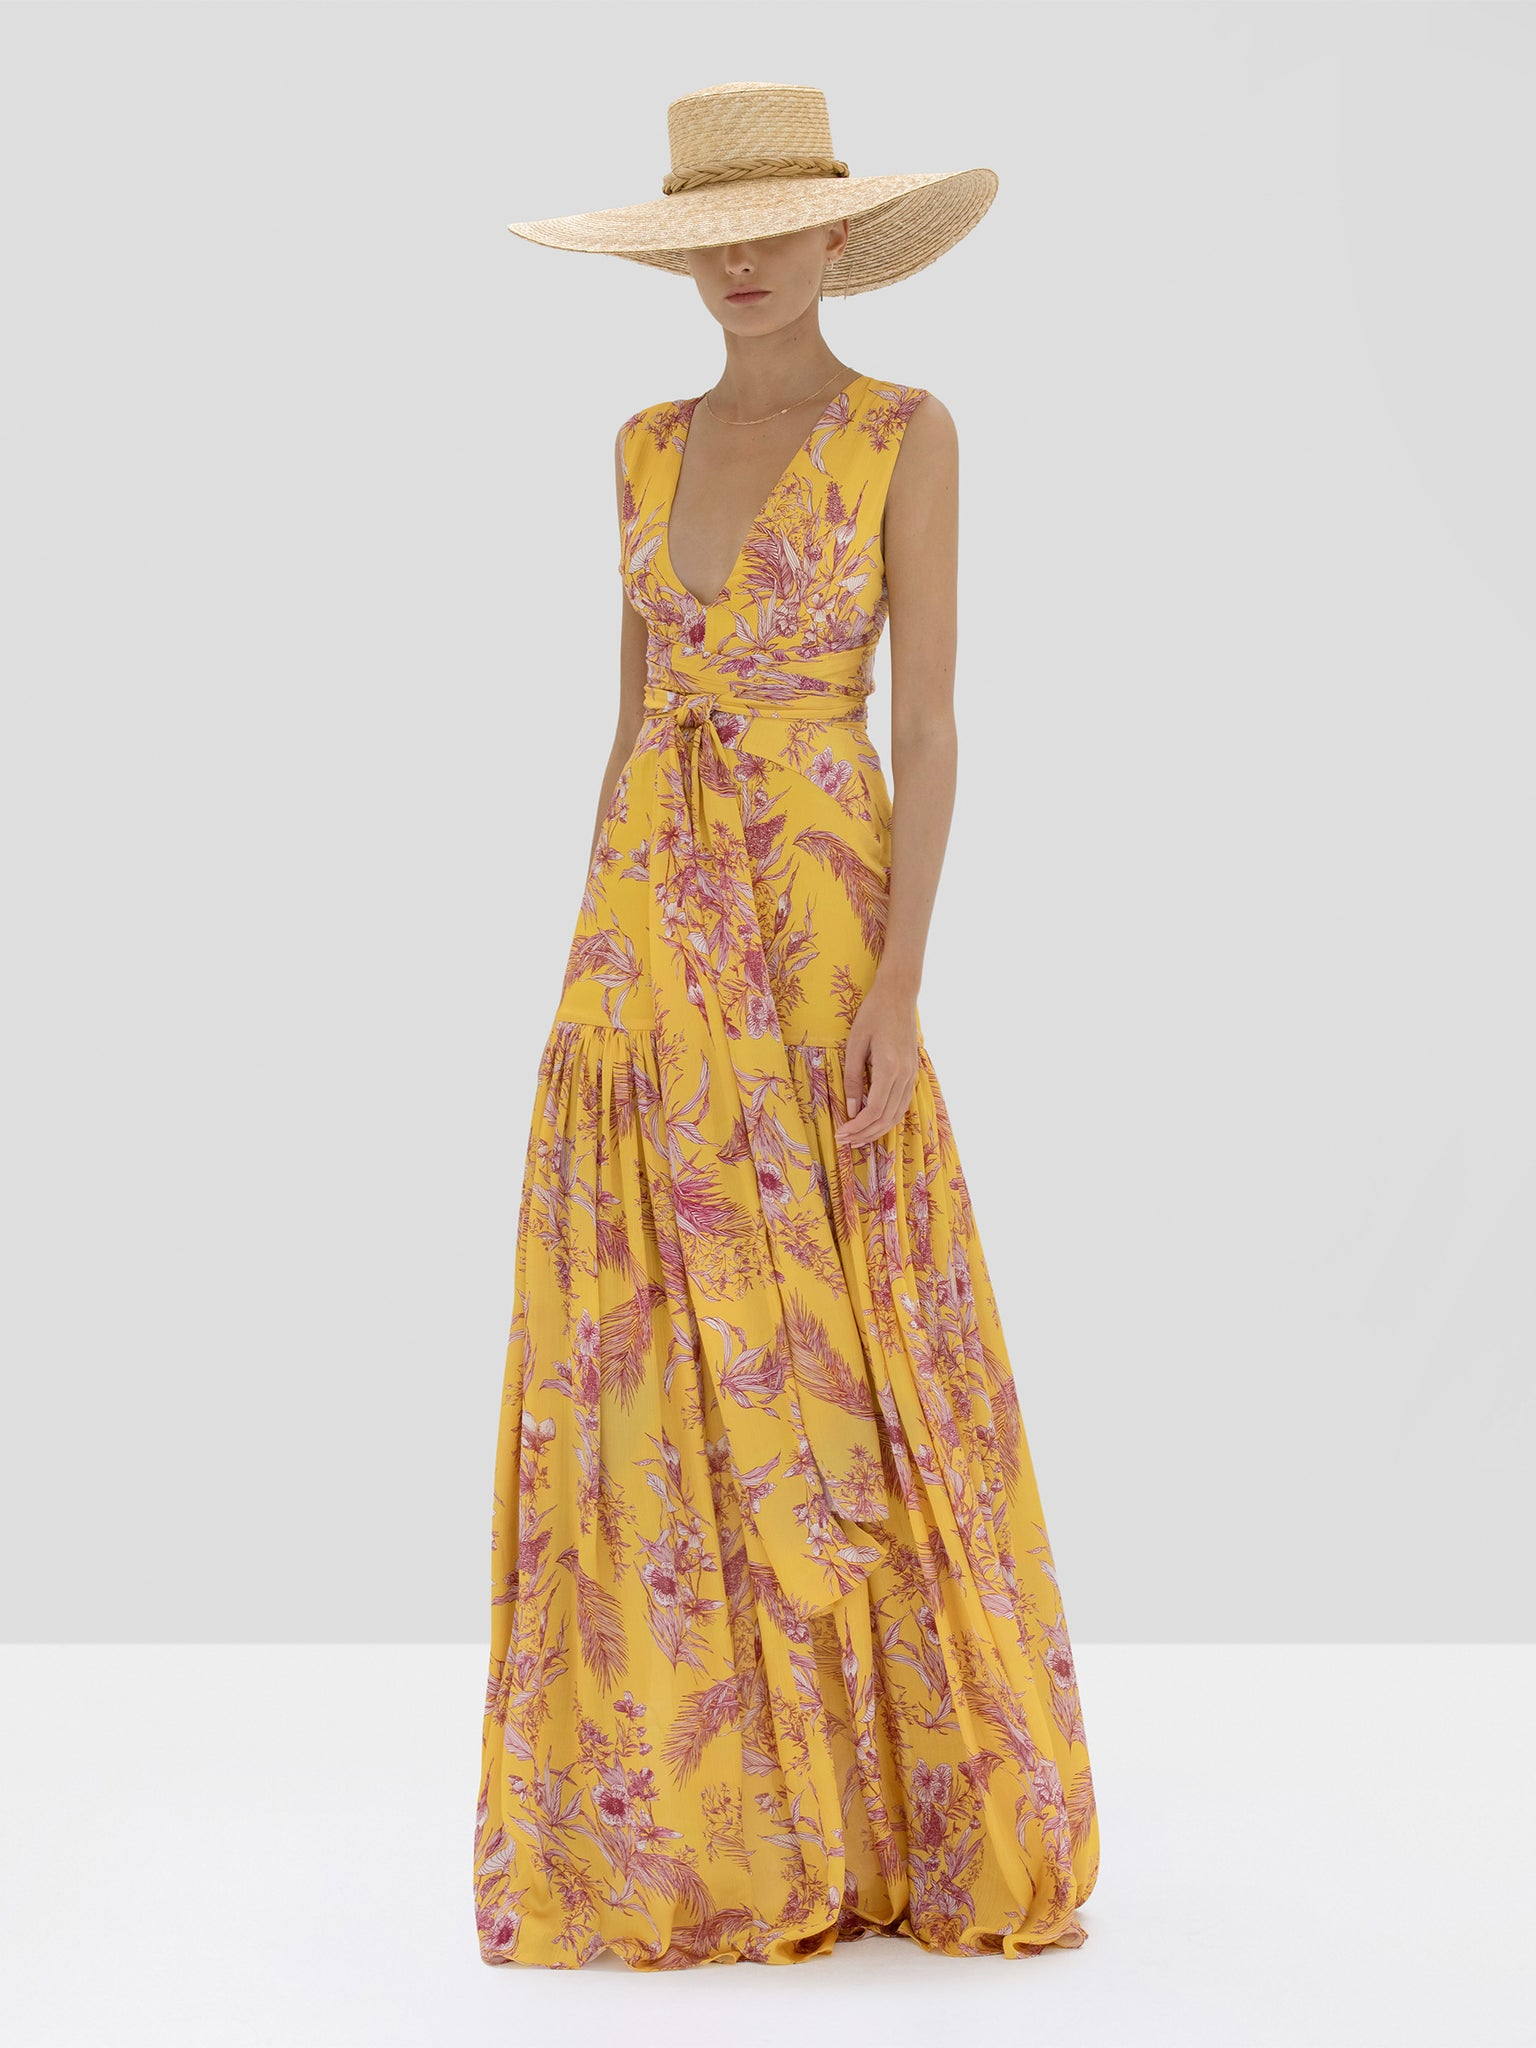 Alexis Belaya Dress in Tuscan Palm from Spring Summer 2020 Collection